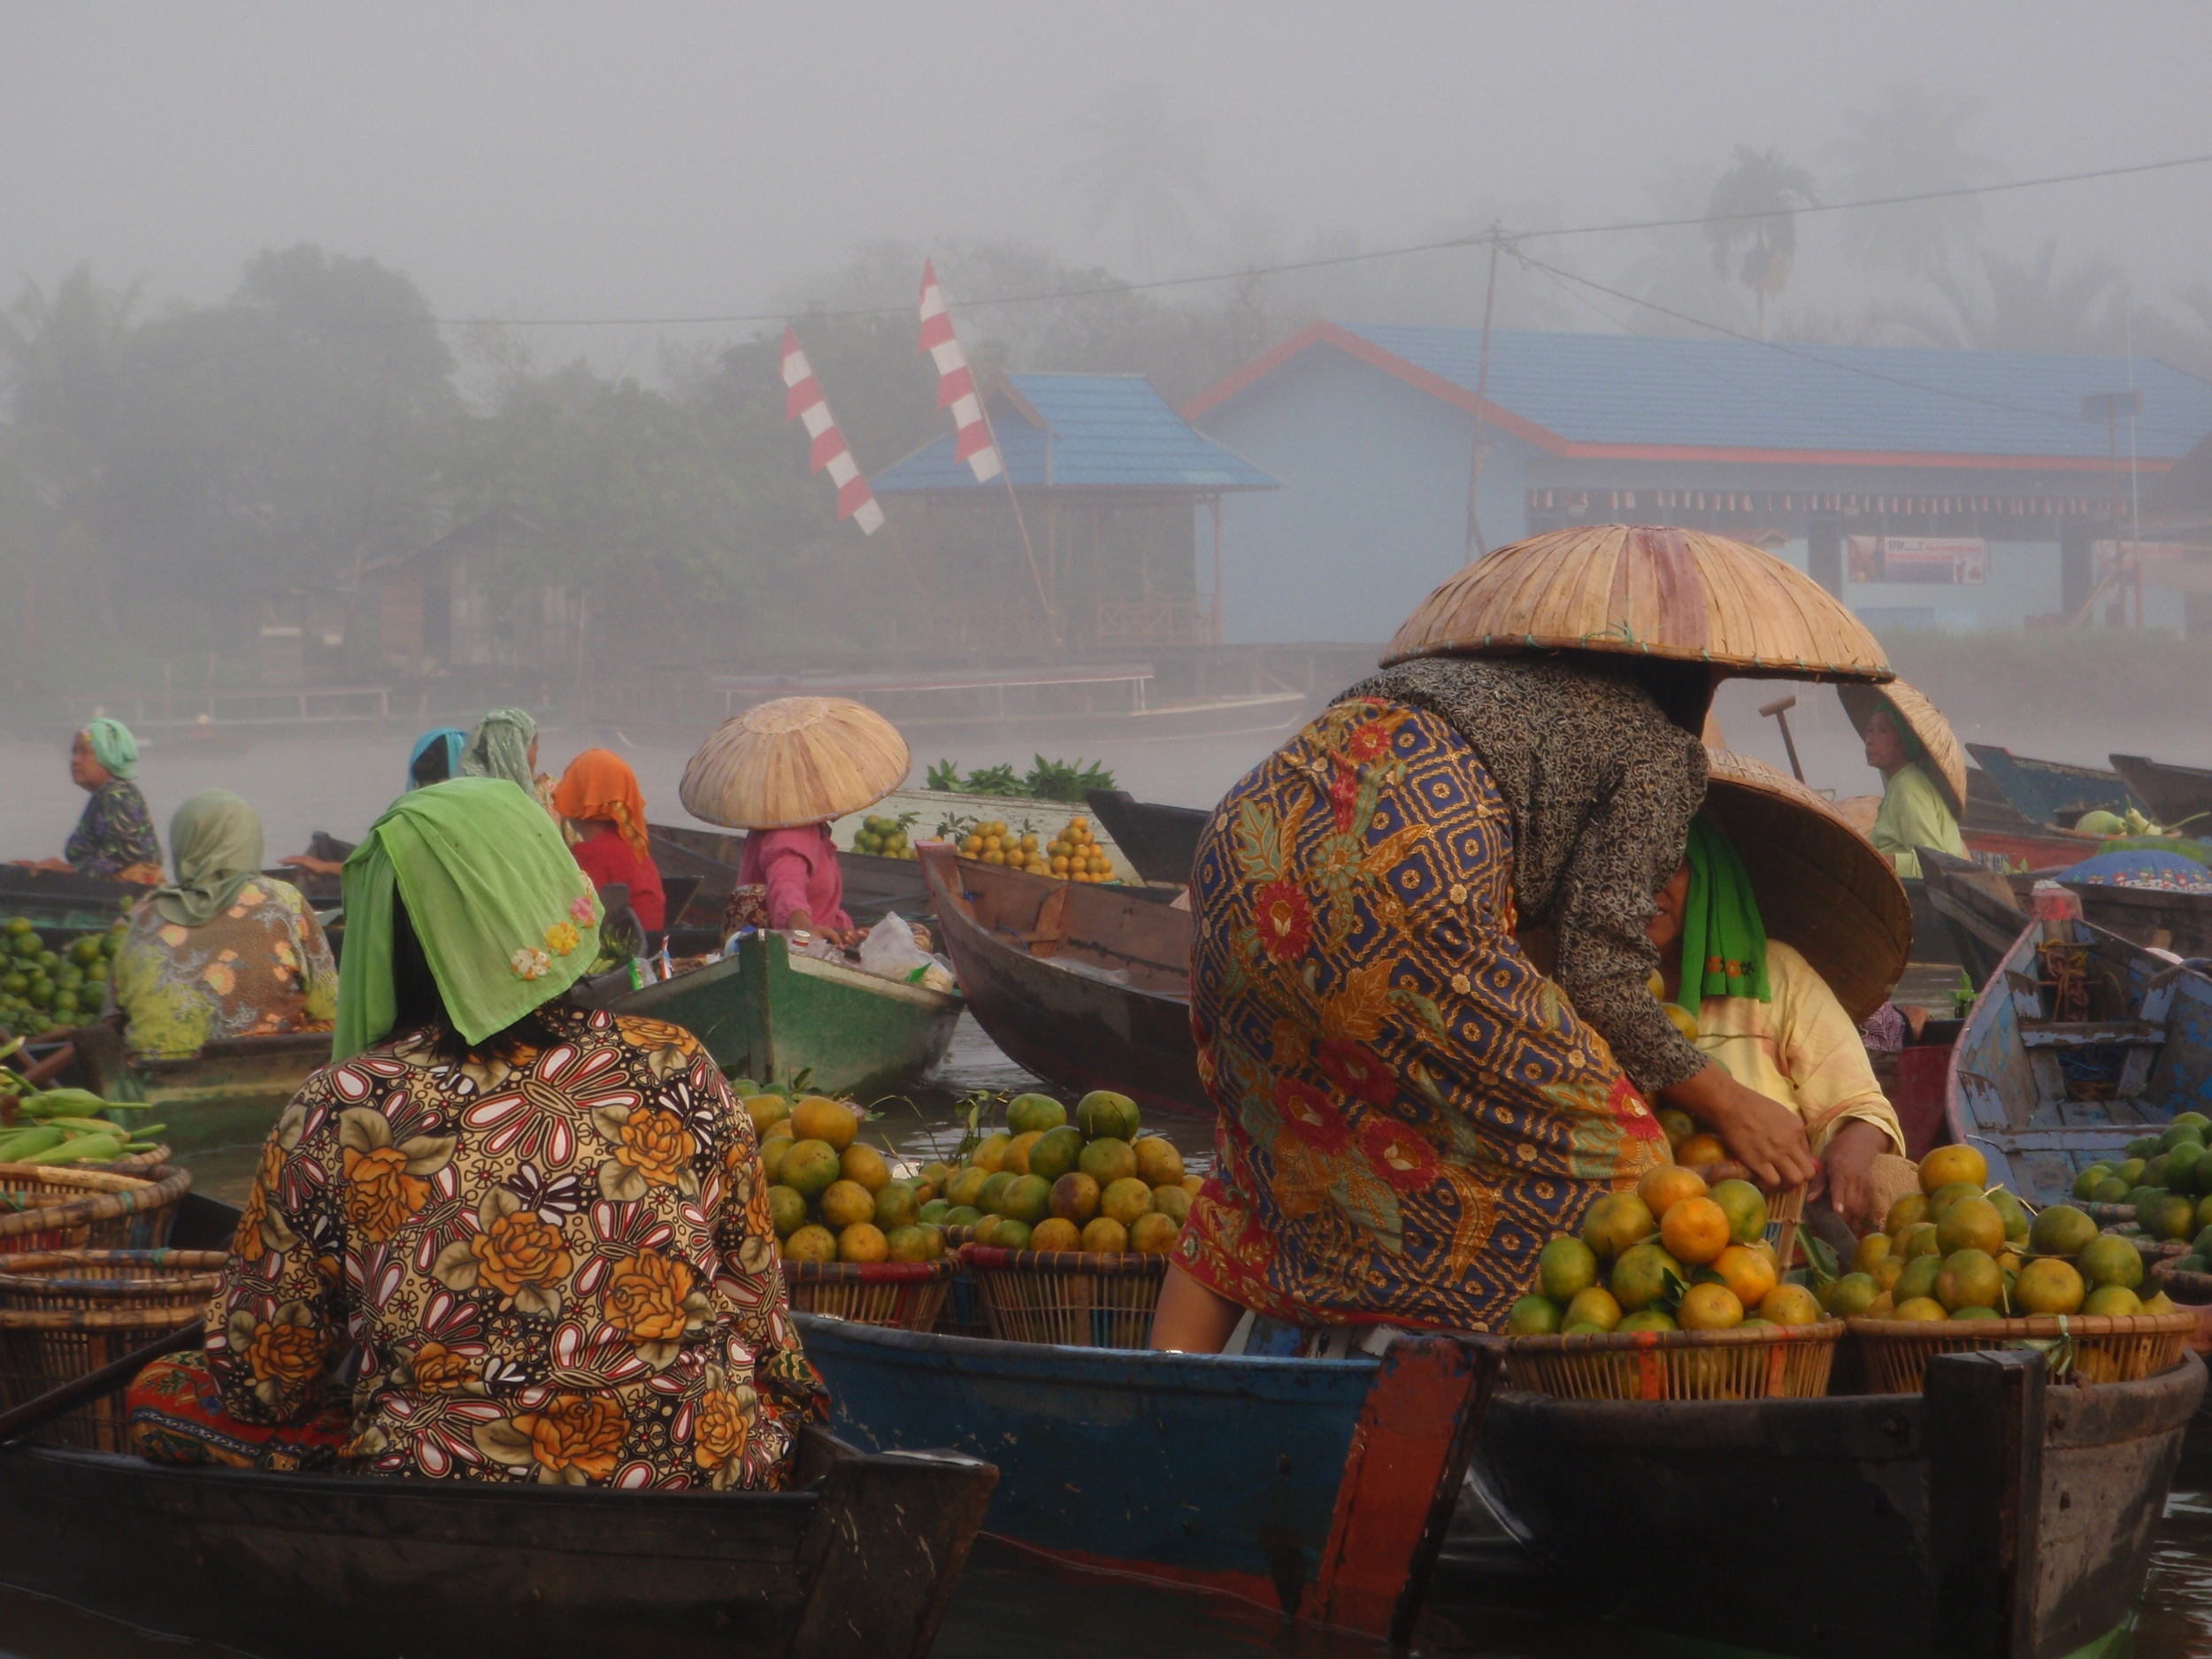 A moment of color at the floating markets of banjarmasin, an industrial city in the jungle of borneo, indonesia